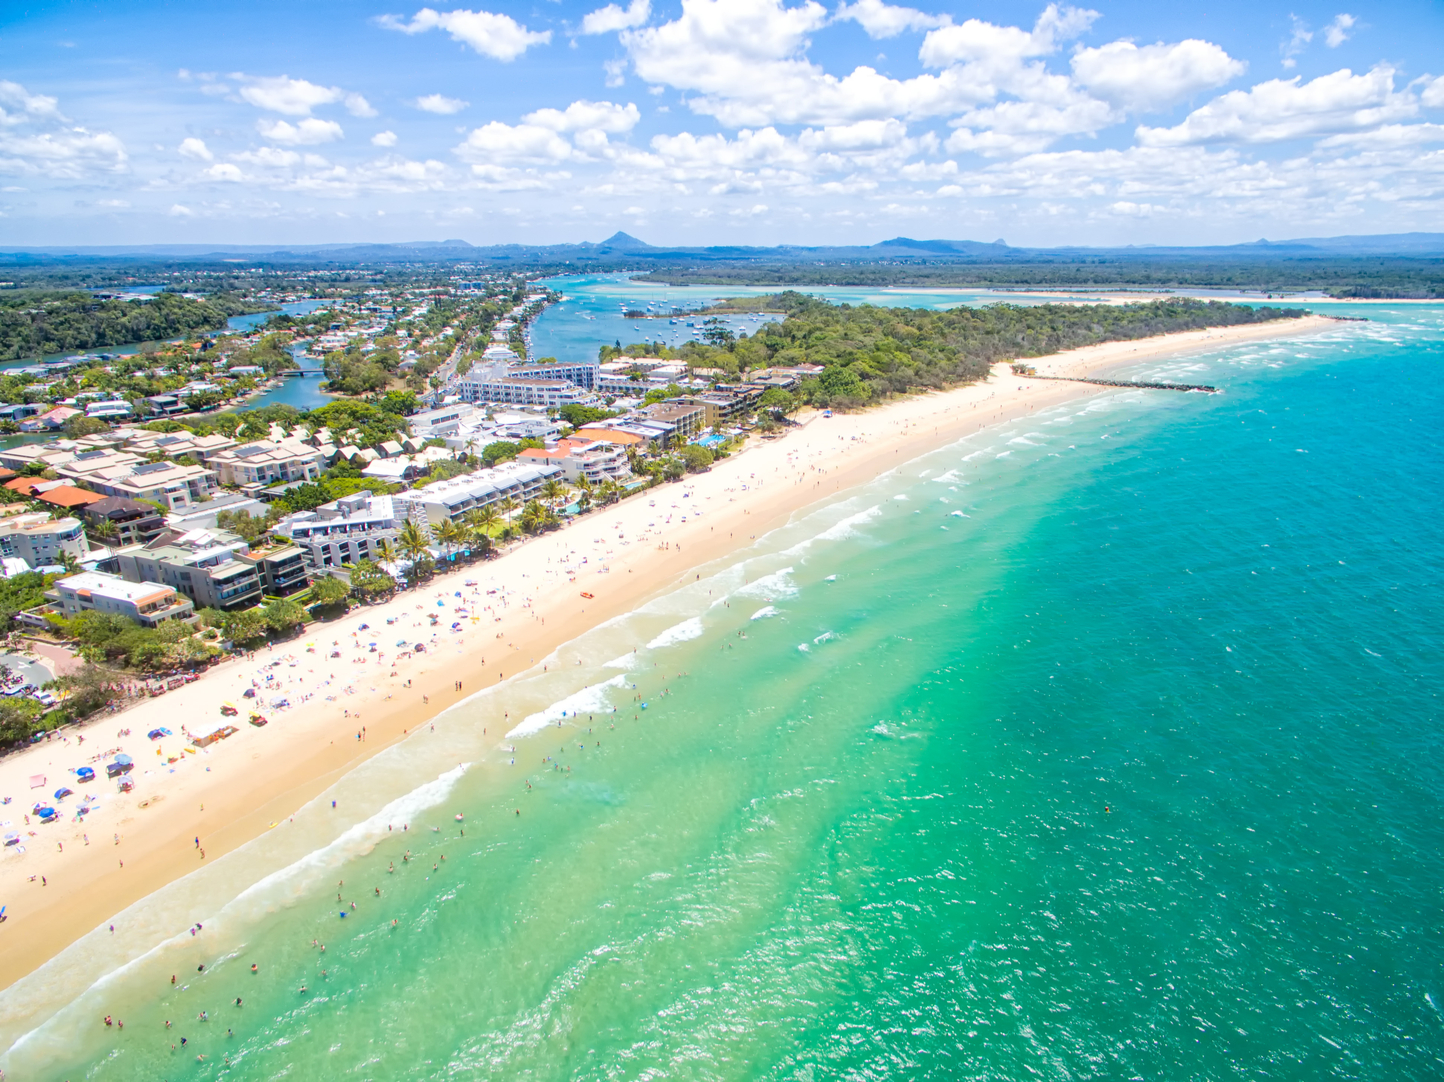 areal view of the Noosa Heads and Sunshine Beach